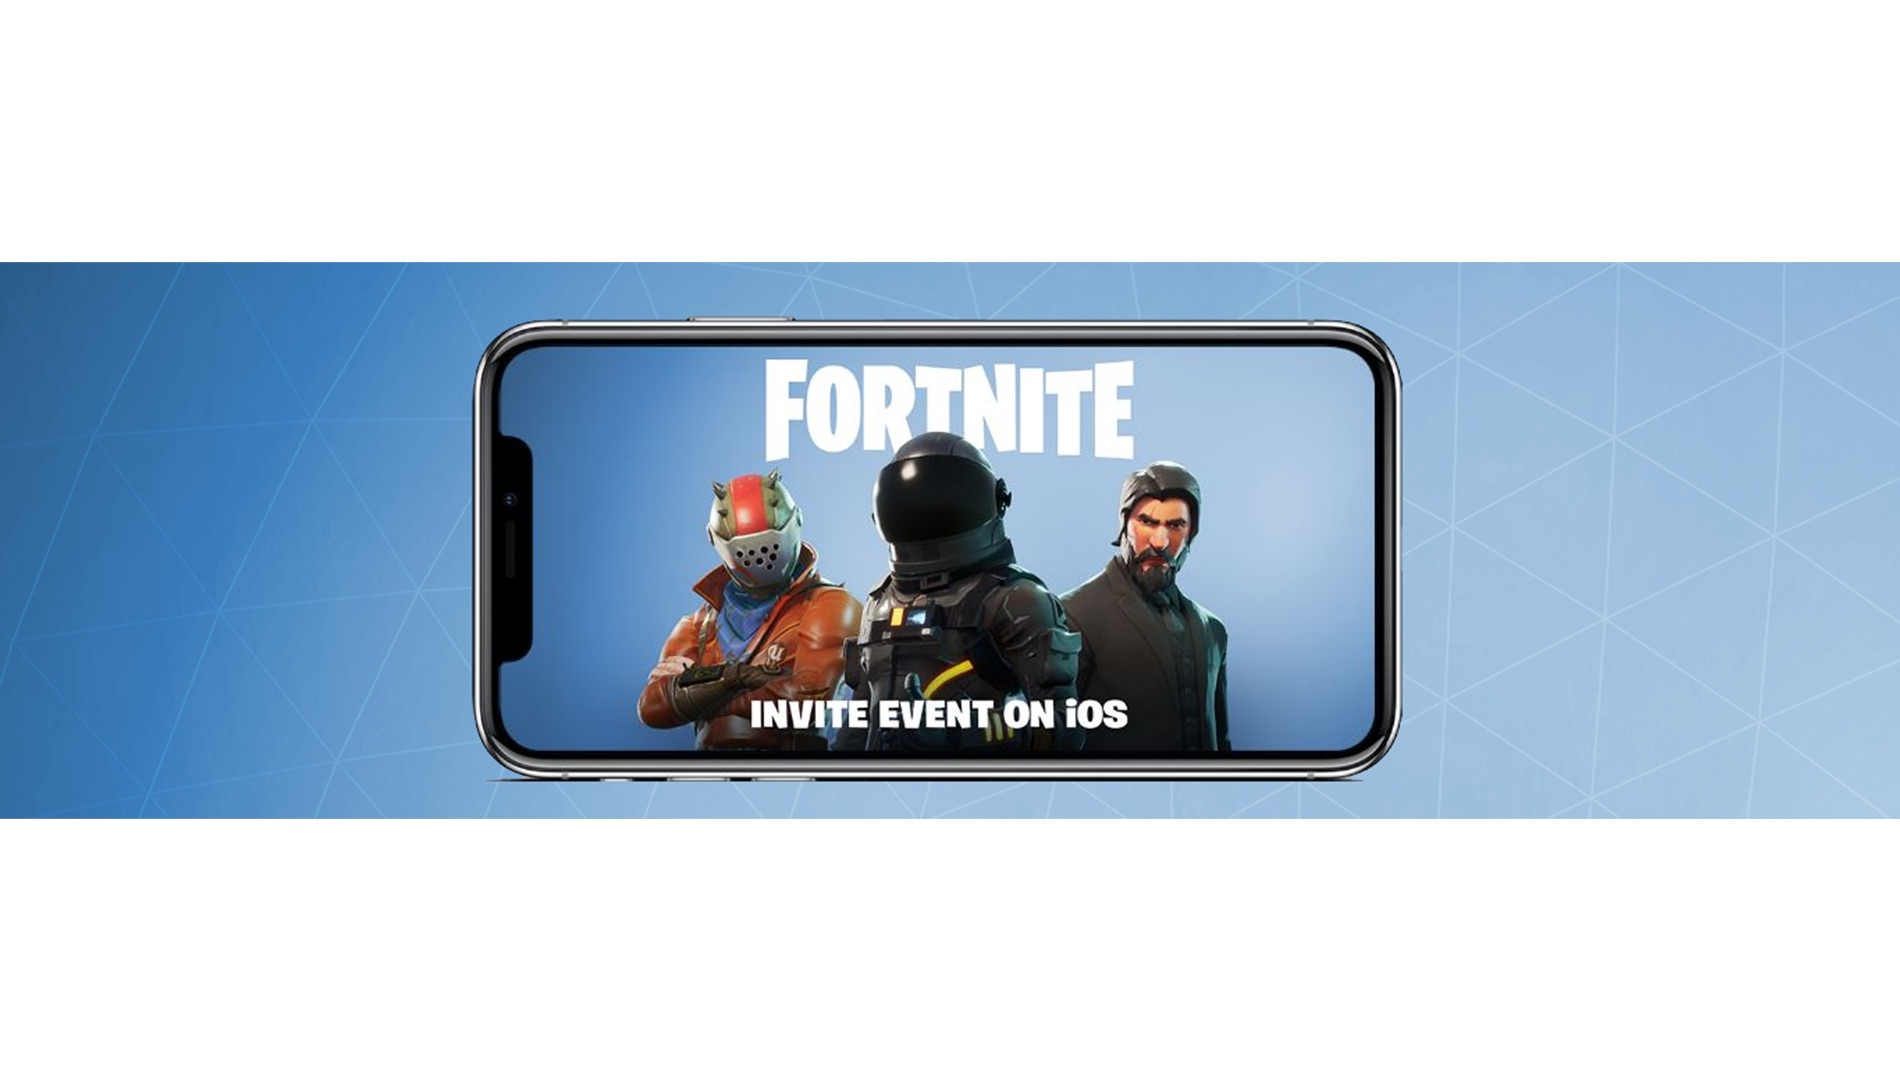 Fortnite Battle Royale is officially coming to mobile devices